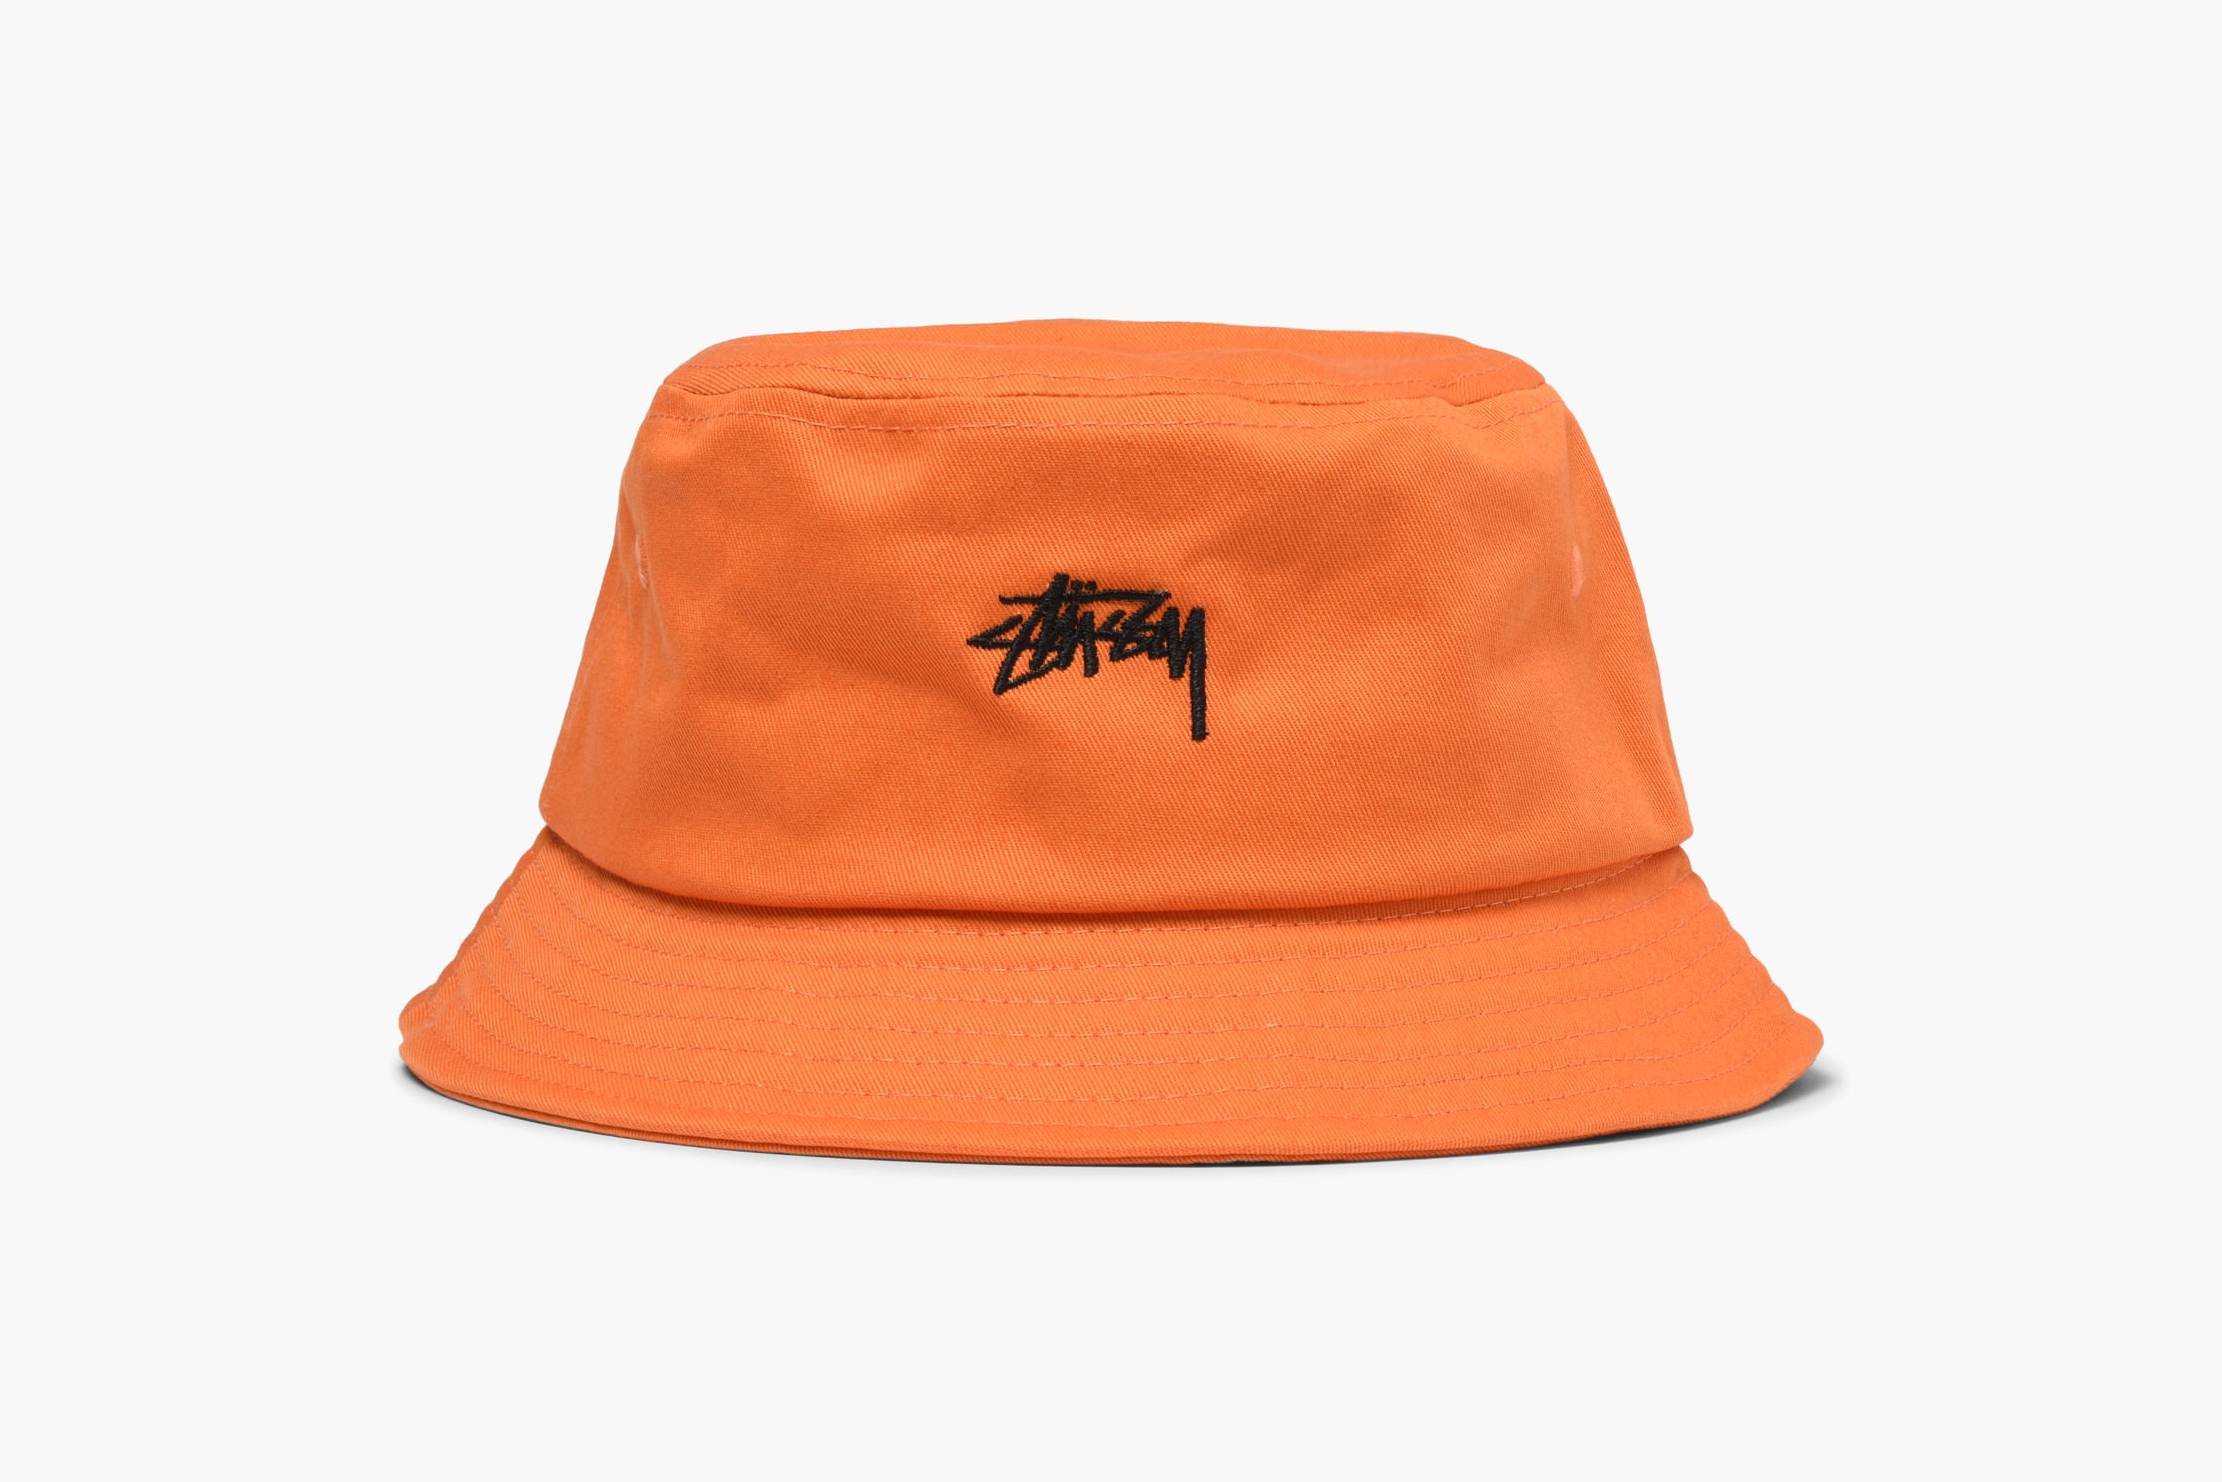 83f65e5341e 10 of the Dopest Bucket Hats for Under  50